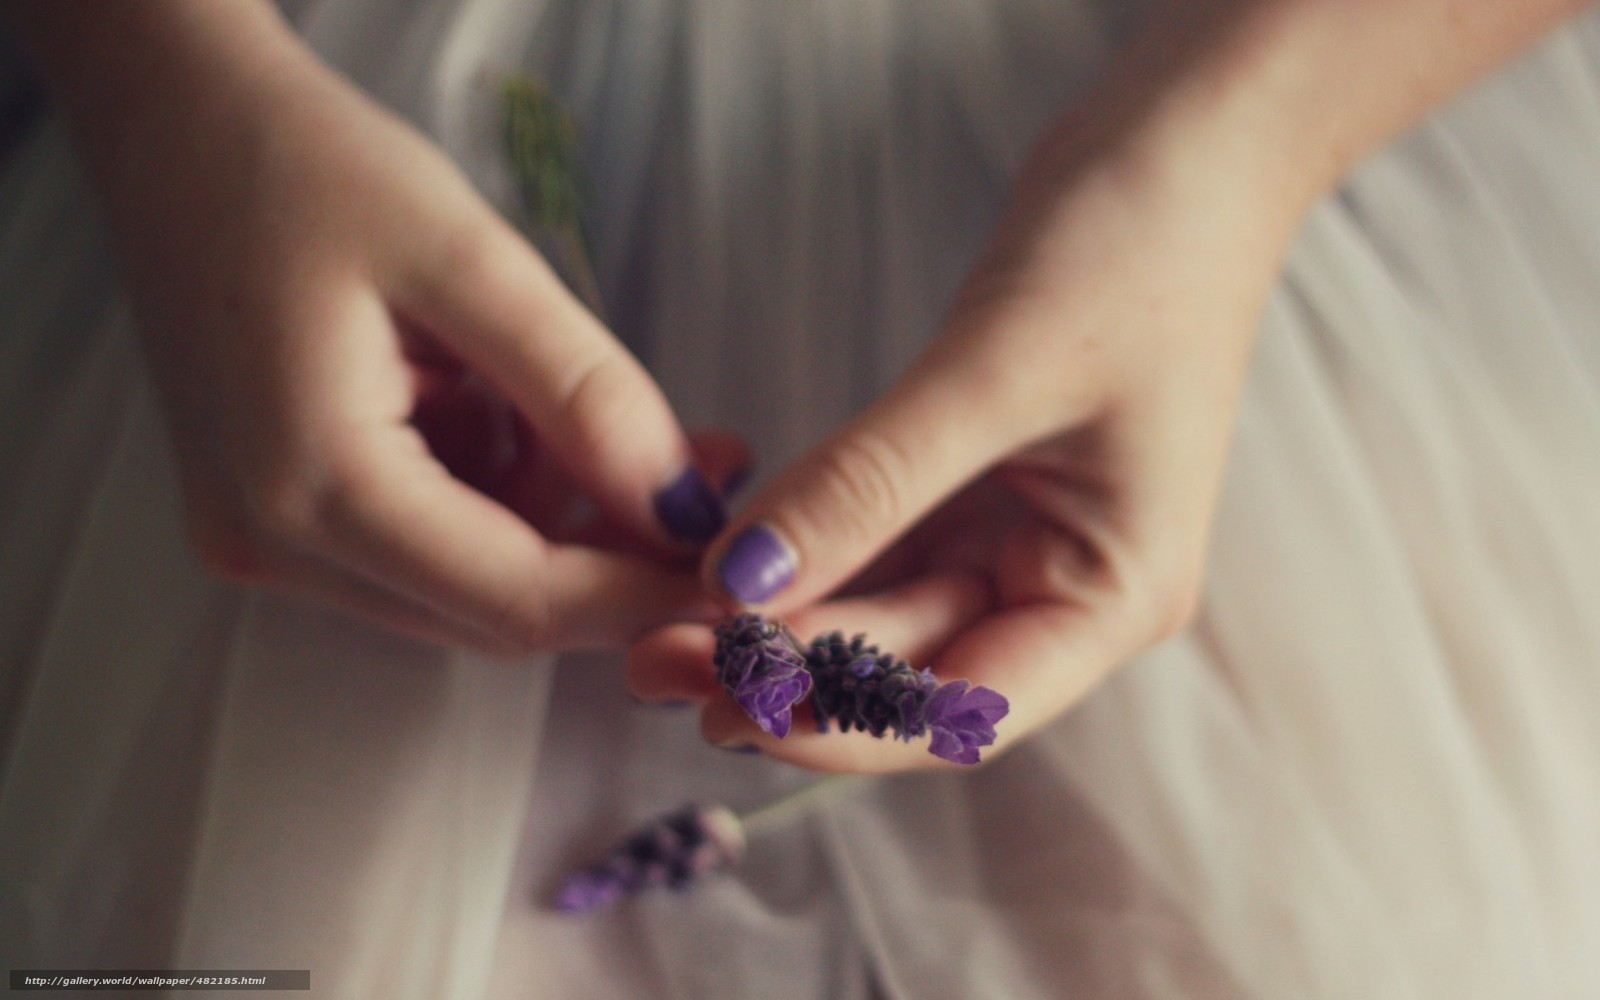 Cute Background Wallpaper Download Download Wallpaper Flowers Girl Hand Florets Purple